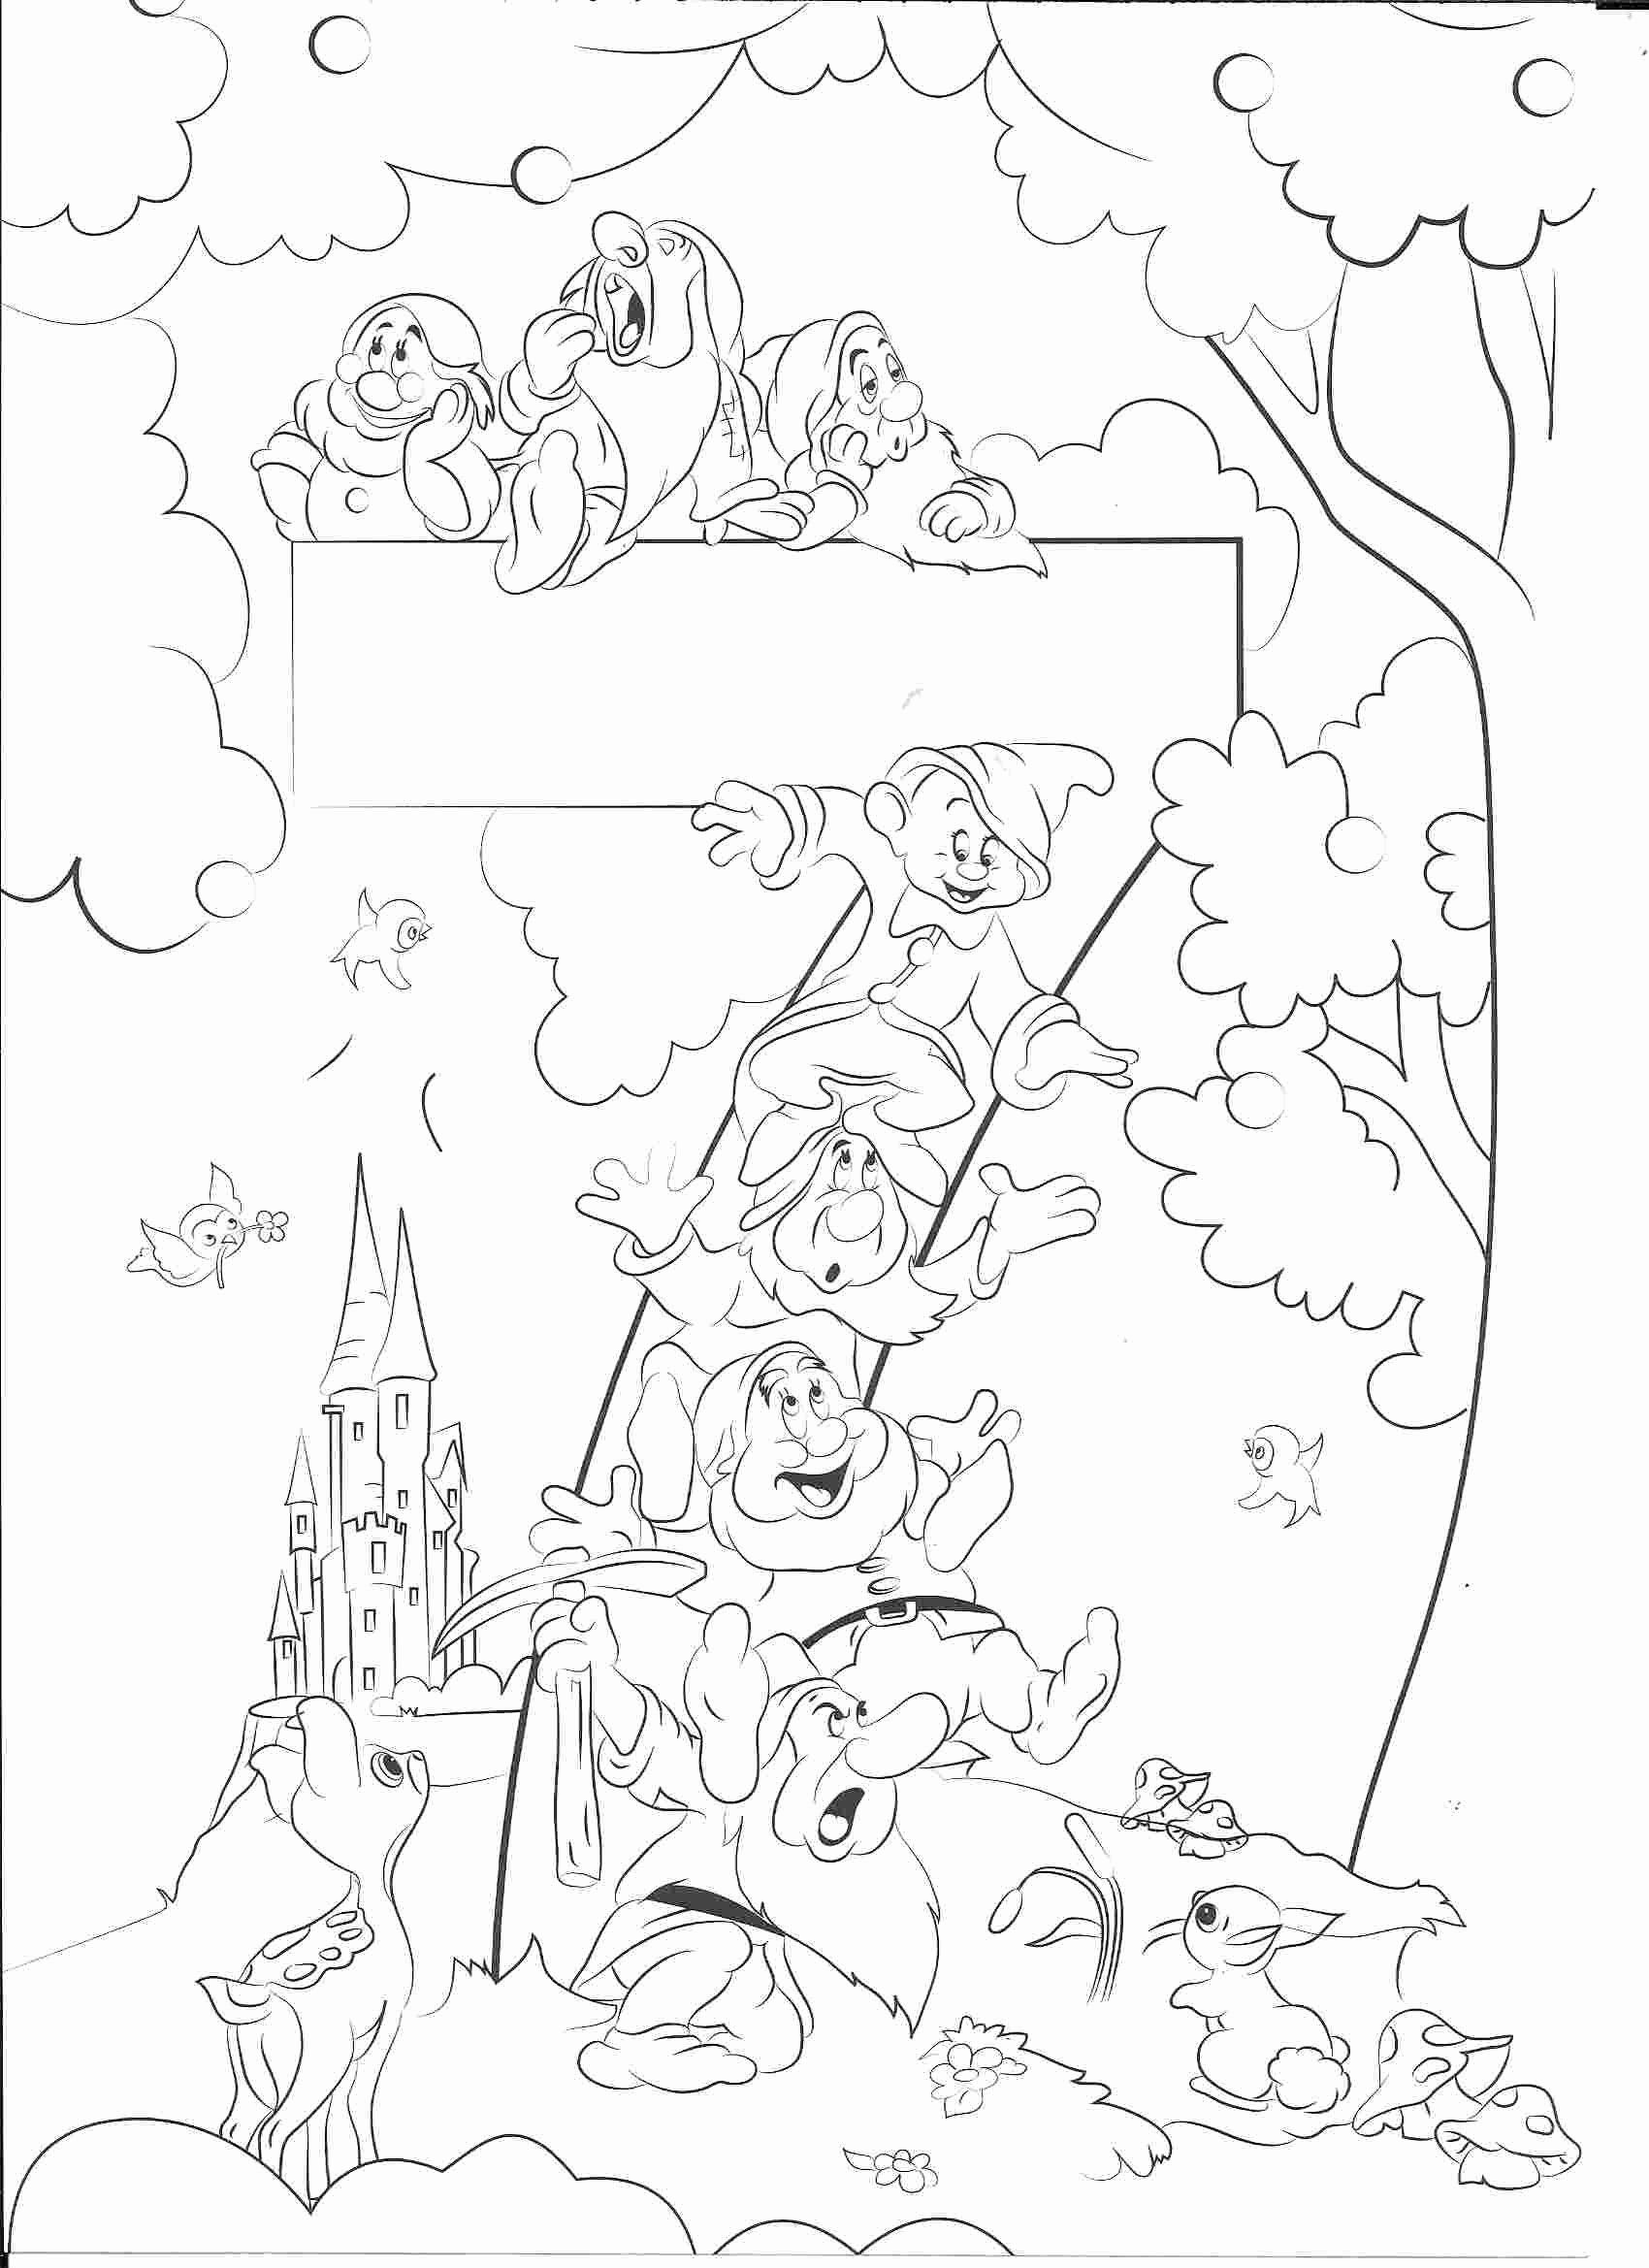 Print Free Coloring Pages Disney Beautiful Disney Abc Coloring Pages Coloring Page Co Disney Coloring Pages Printables Abc Coloring Pages Disney Coloring Pages [ 2338 x 1700 Pixel ]